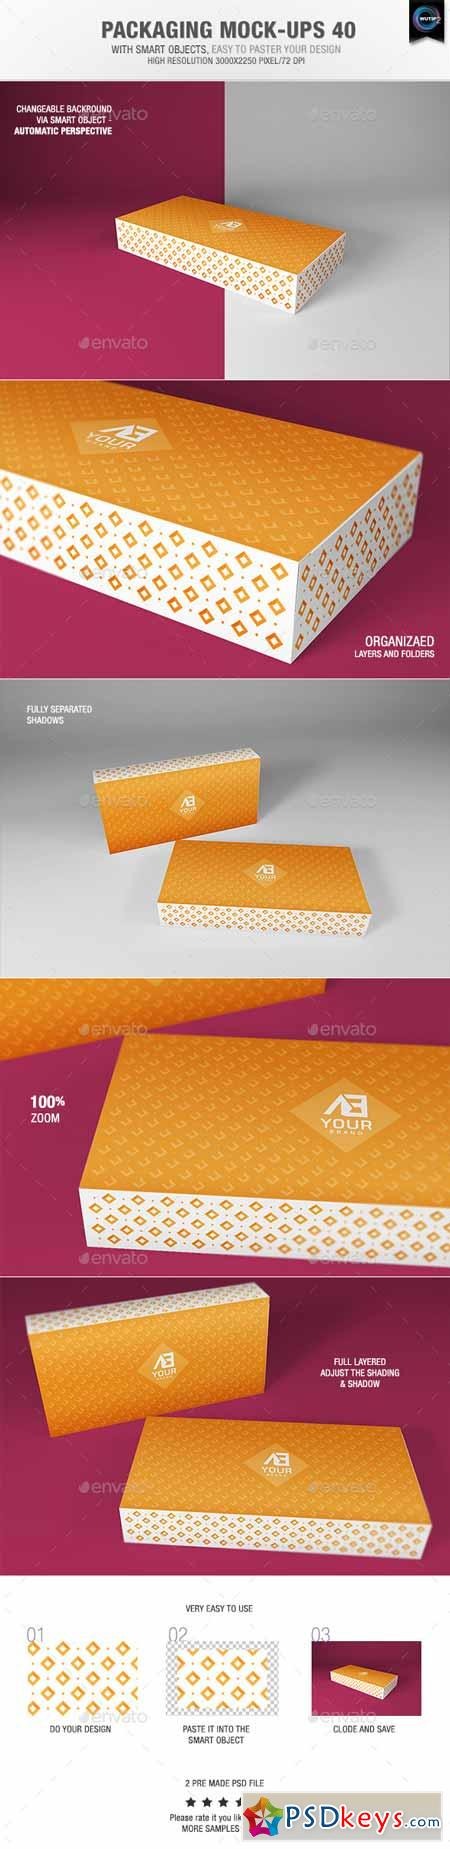 Packaging Mock-ups 40 9815742